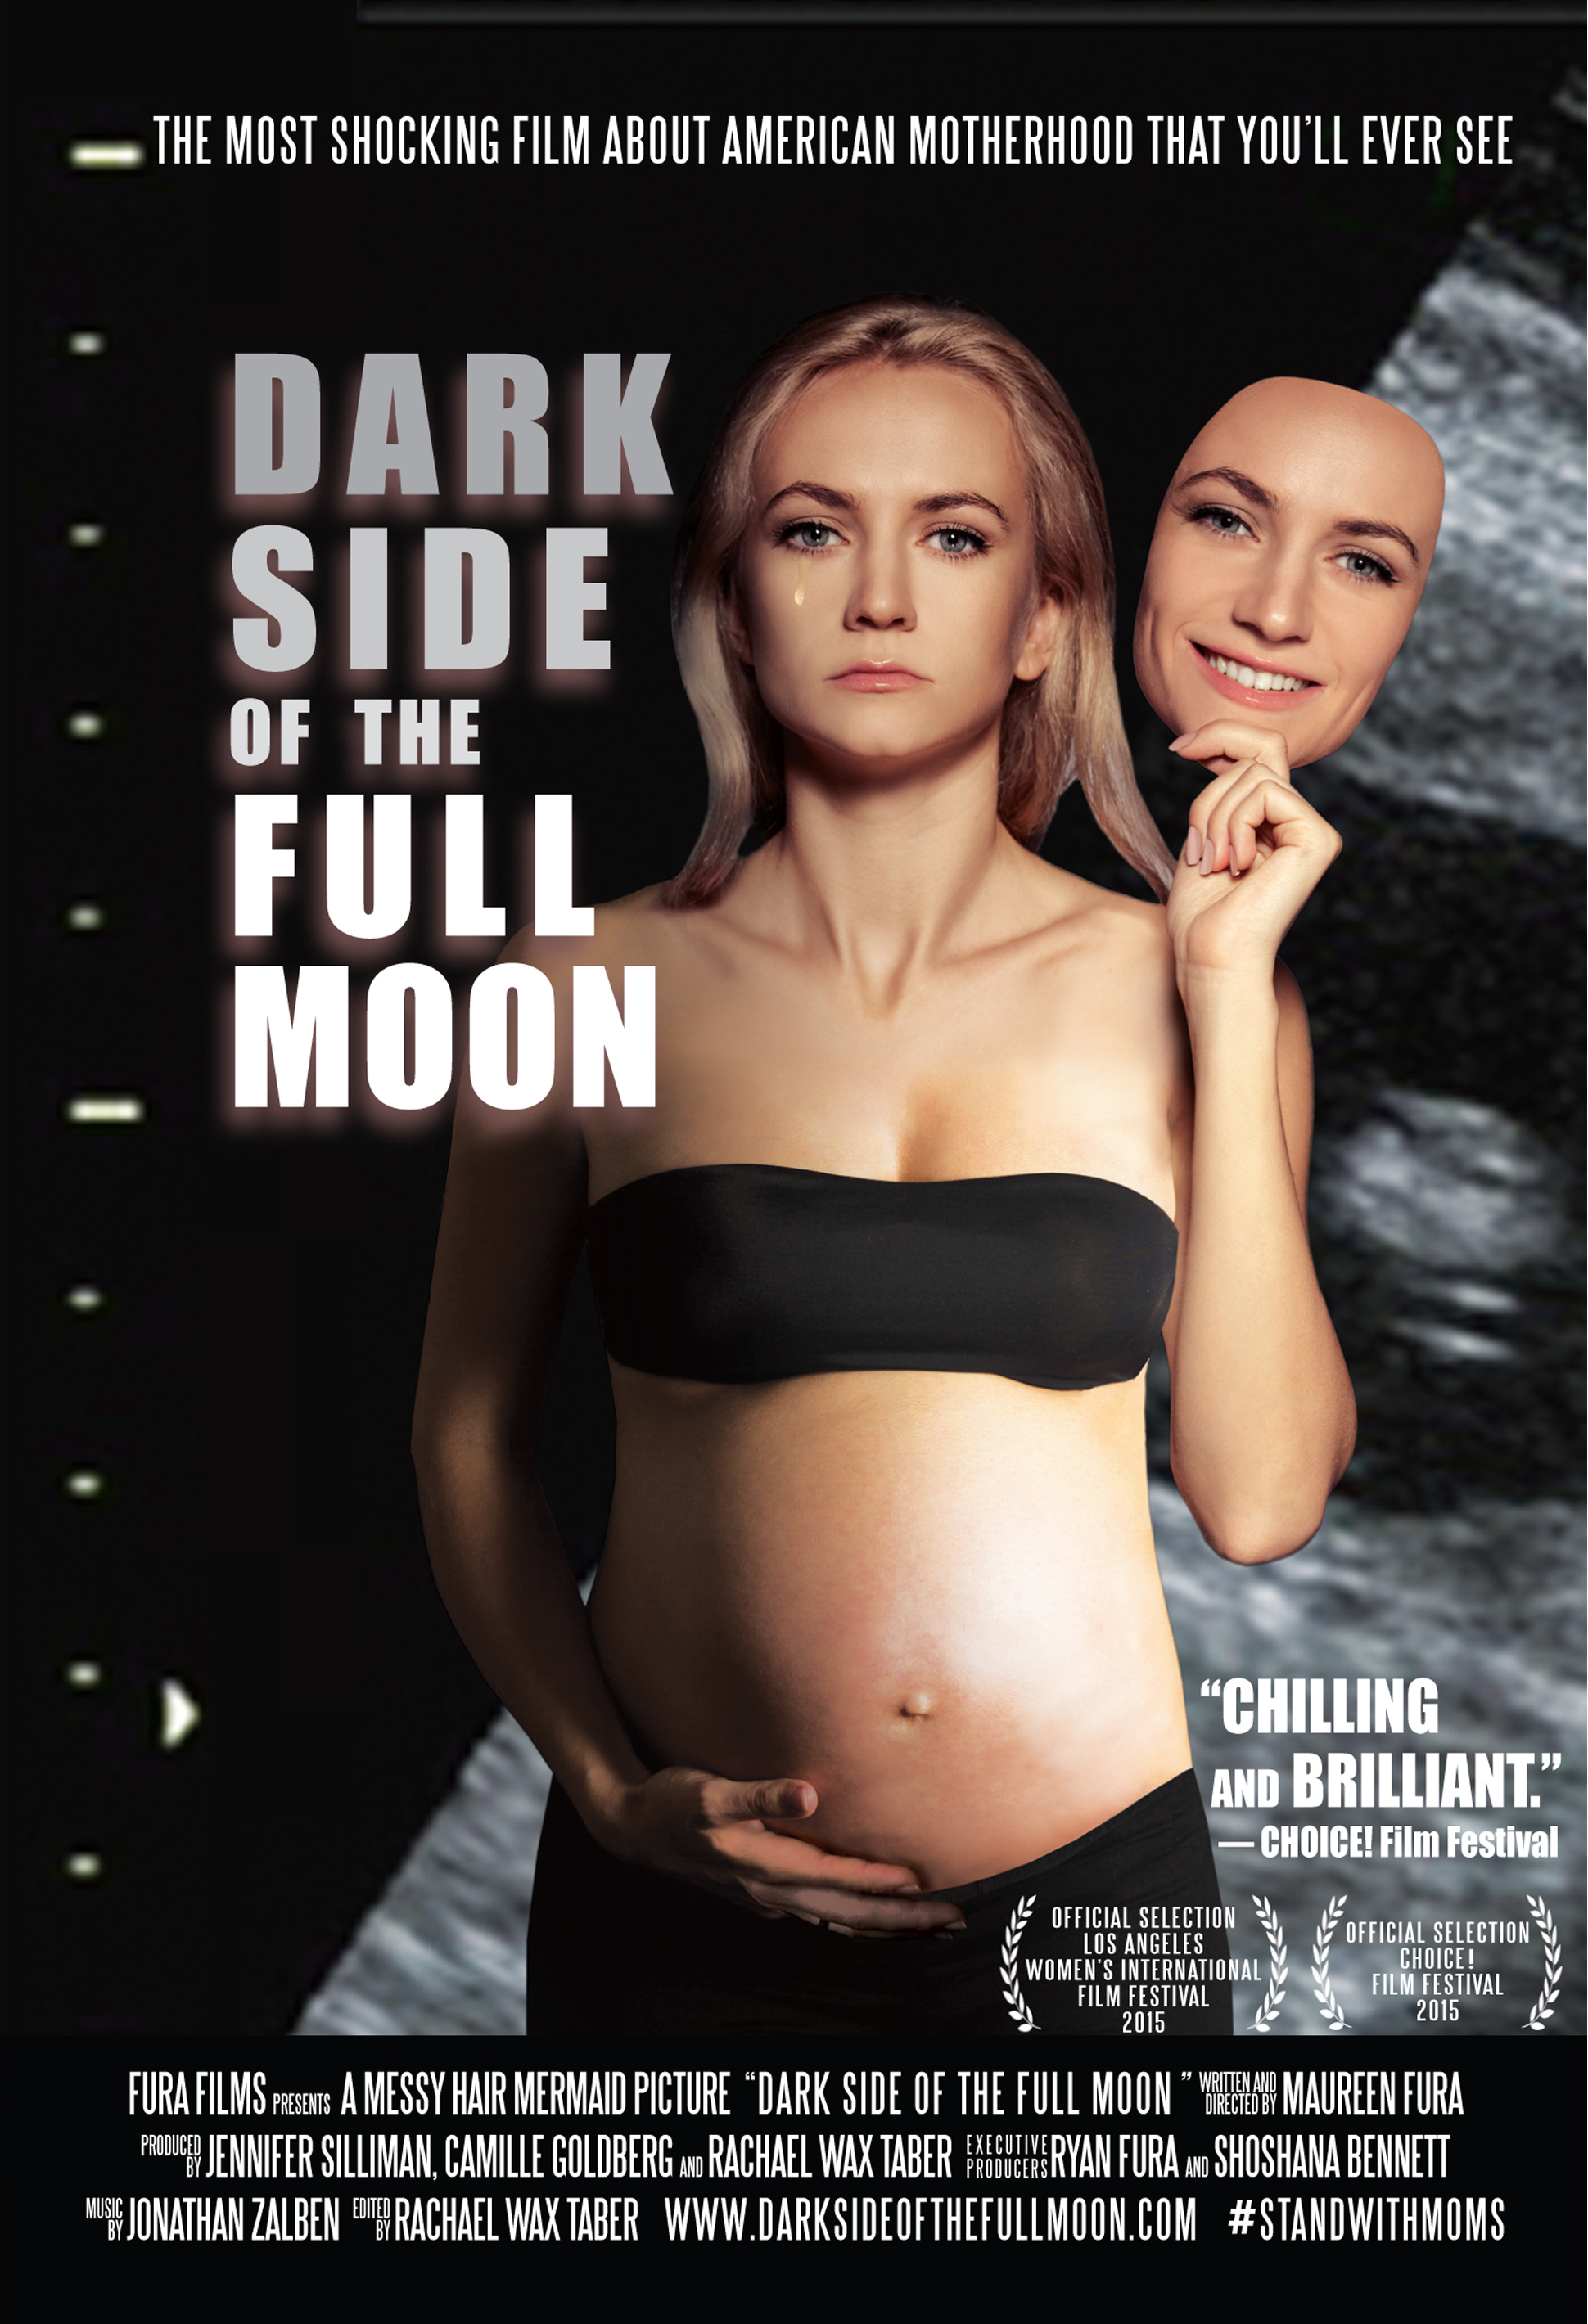 Dark Side of the Full Moon Free screening poster. Please click here to reach the event registration page.